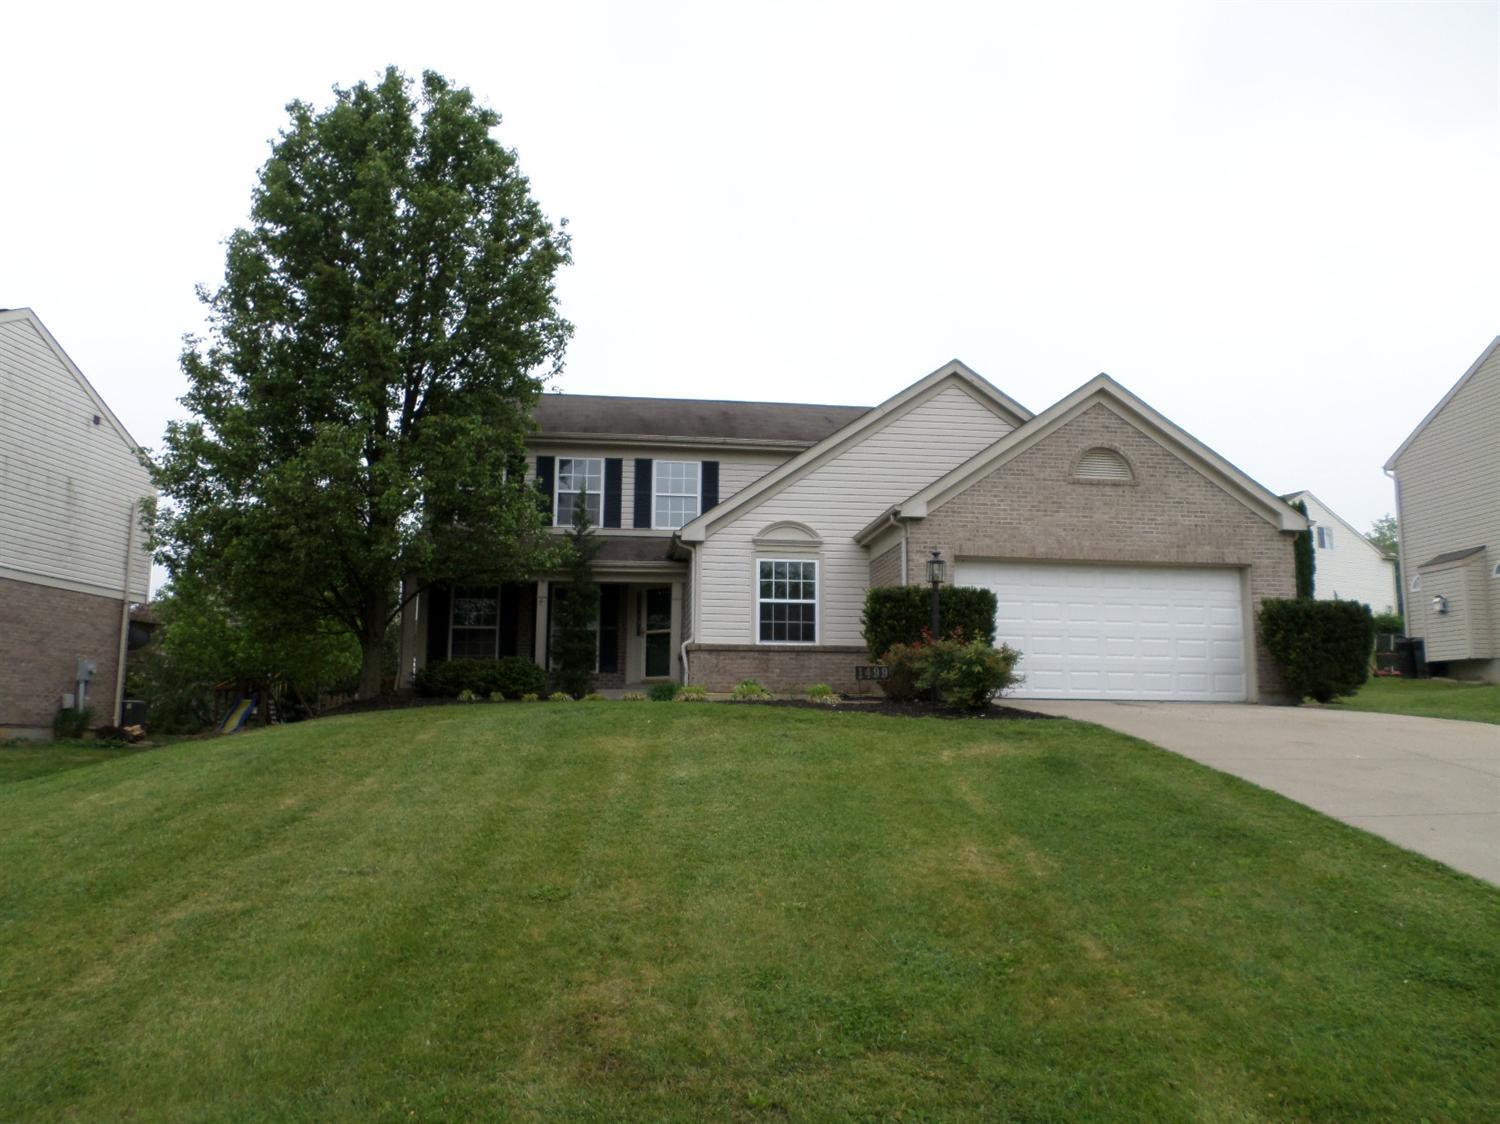 Photo 1 for 1499 Sequoia Dr Hebron, KY 41048